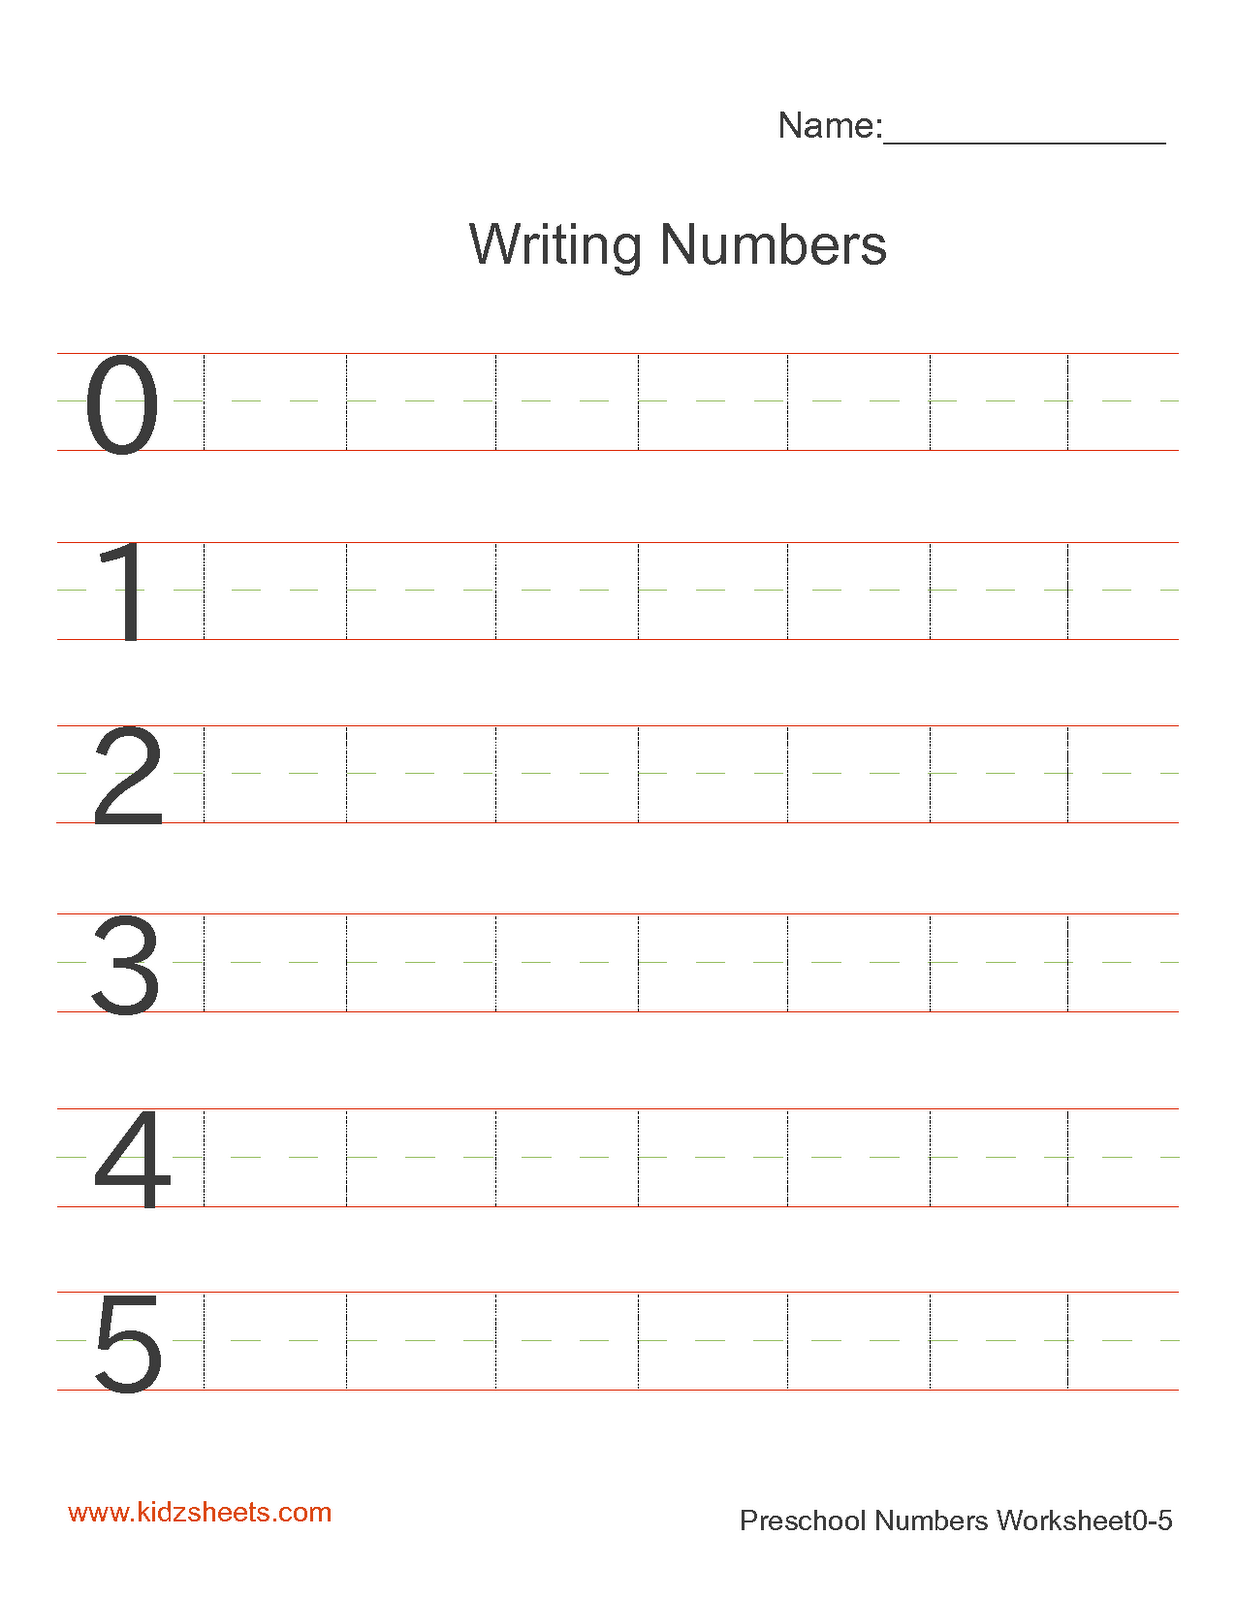 Preschool Writing Numbers Worksheet1 Writing numbers